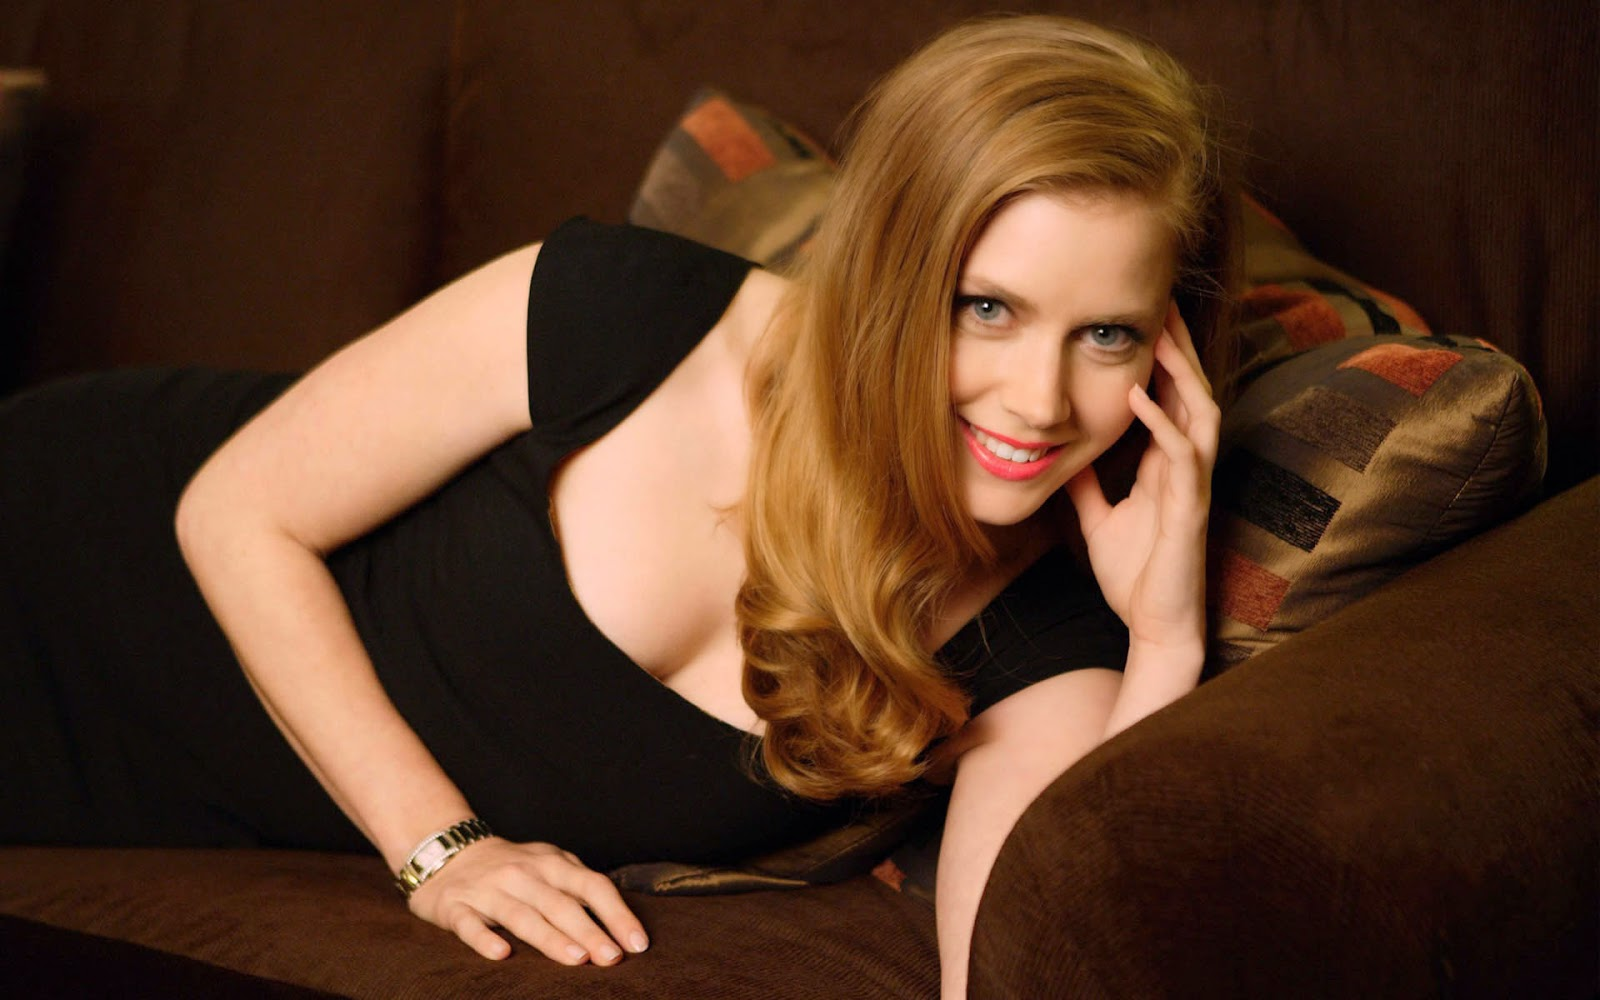 Amy adams sleeping on the bed hot or sexy wallpapers